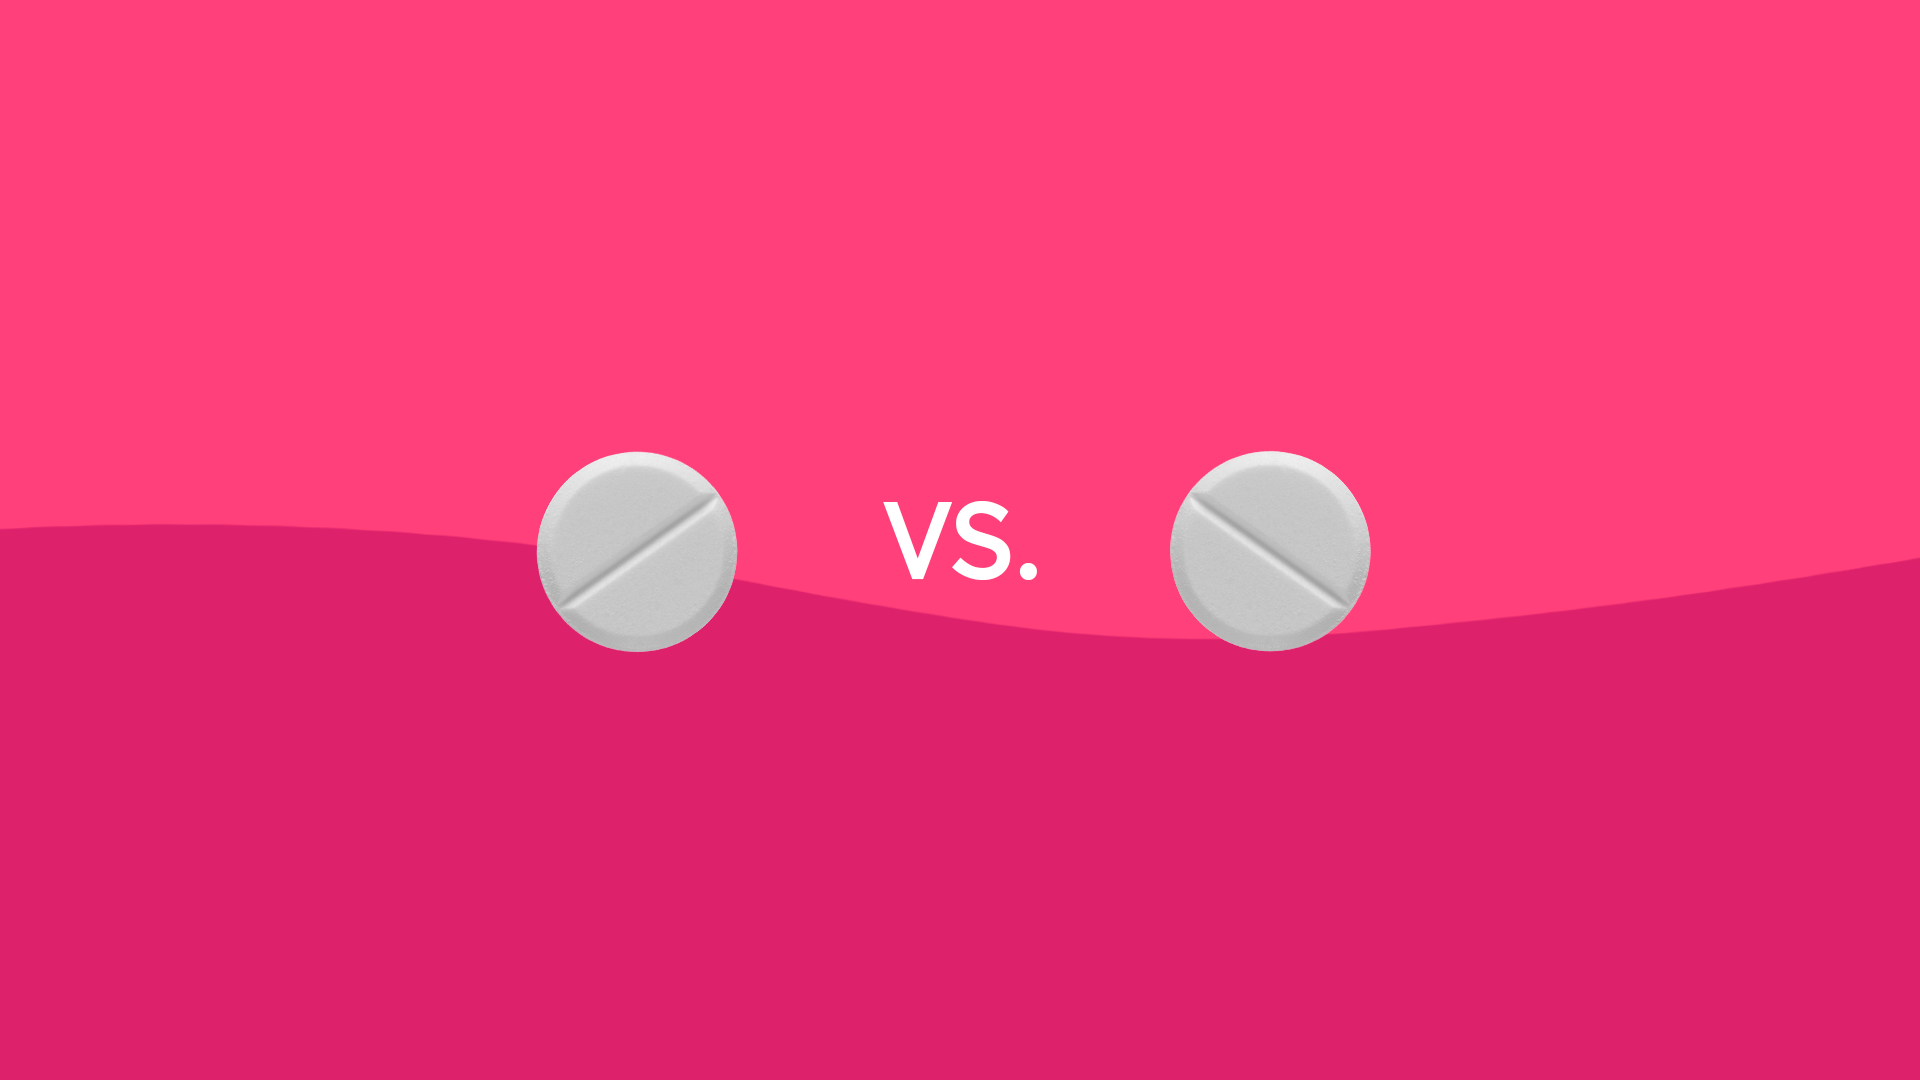 Wellbutrin vs. Lexapro: Differences, similarities, and which is better for you